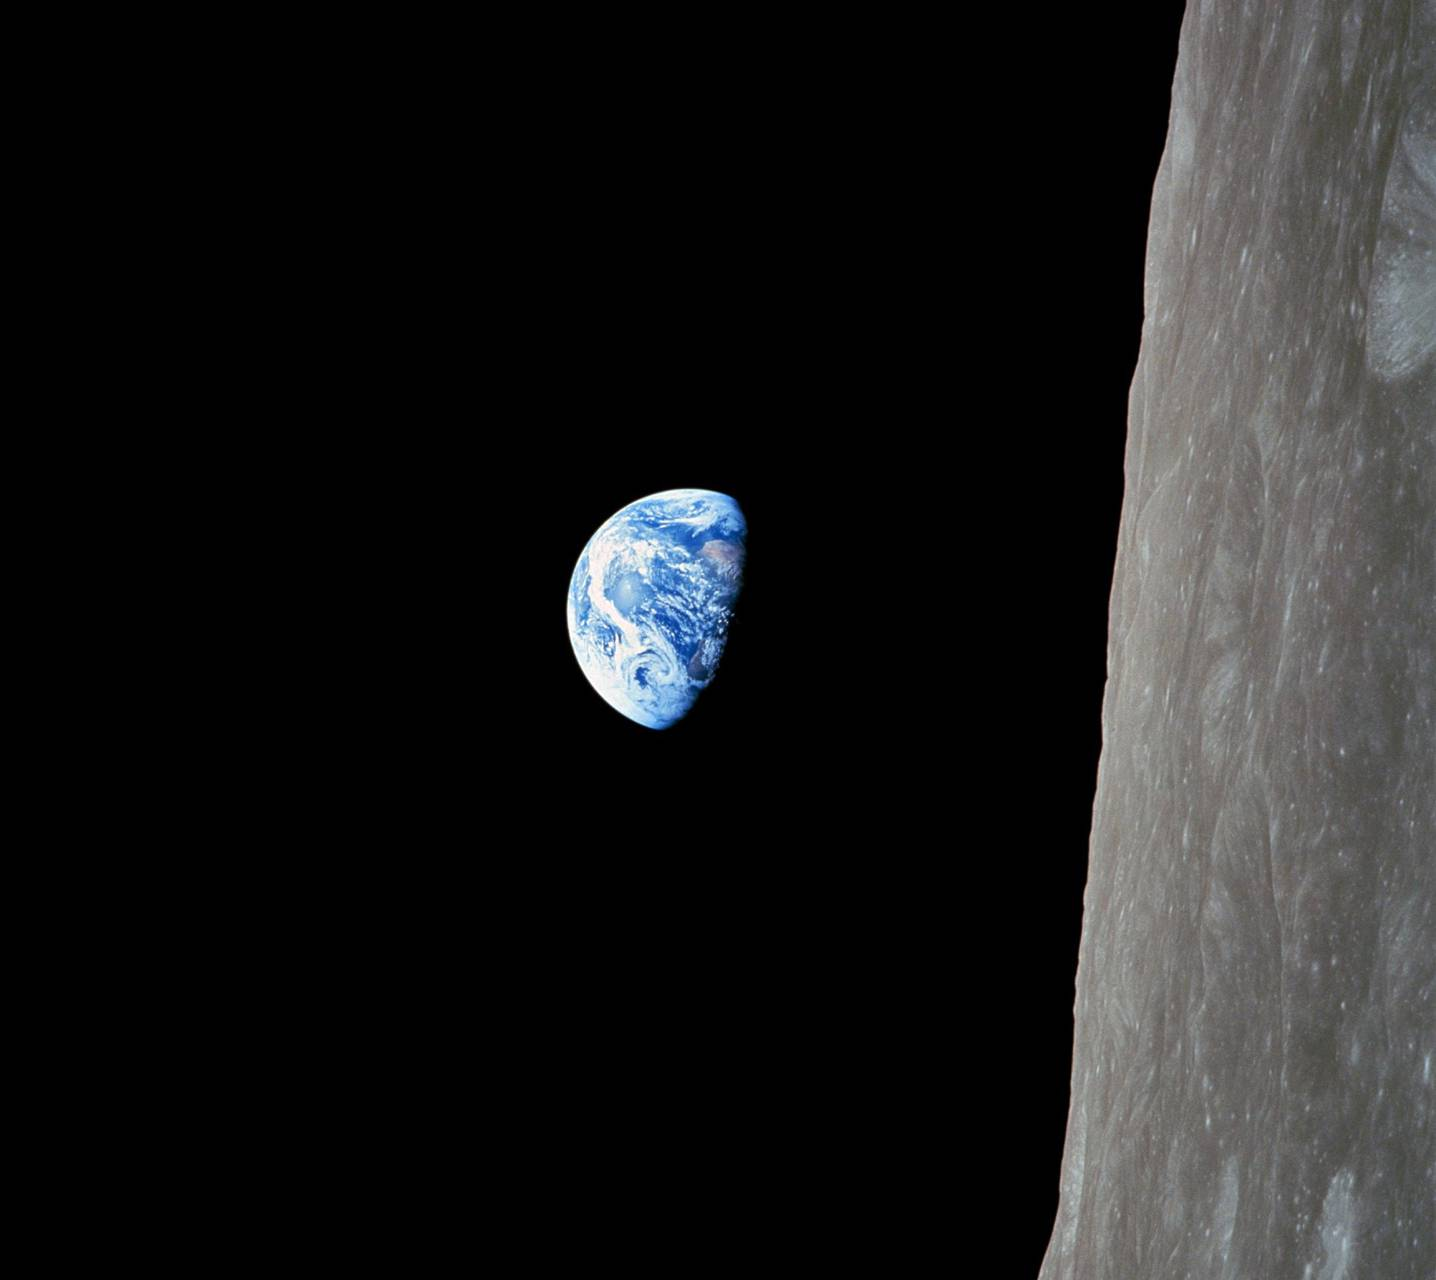 earthrise wallpaperszekihu - a0 - free on zedge™